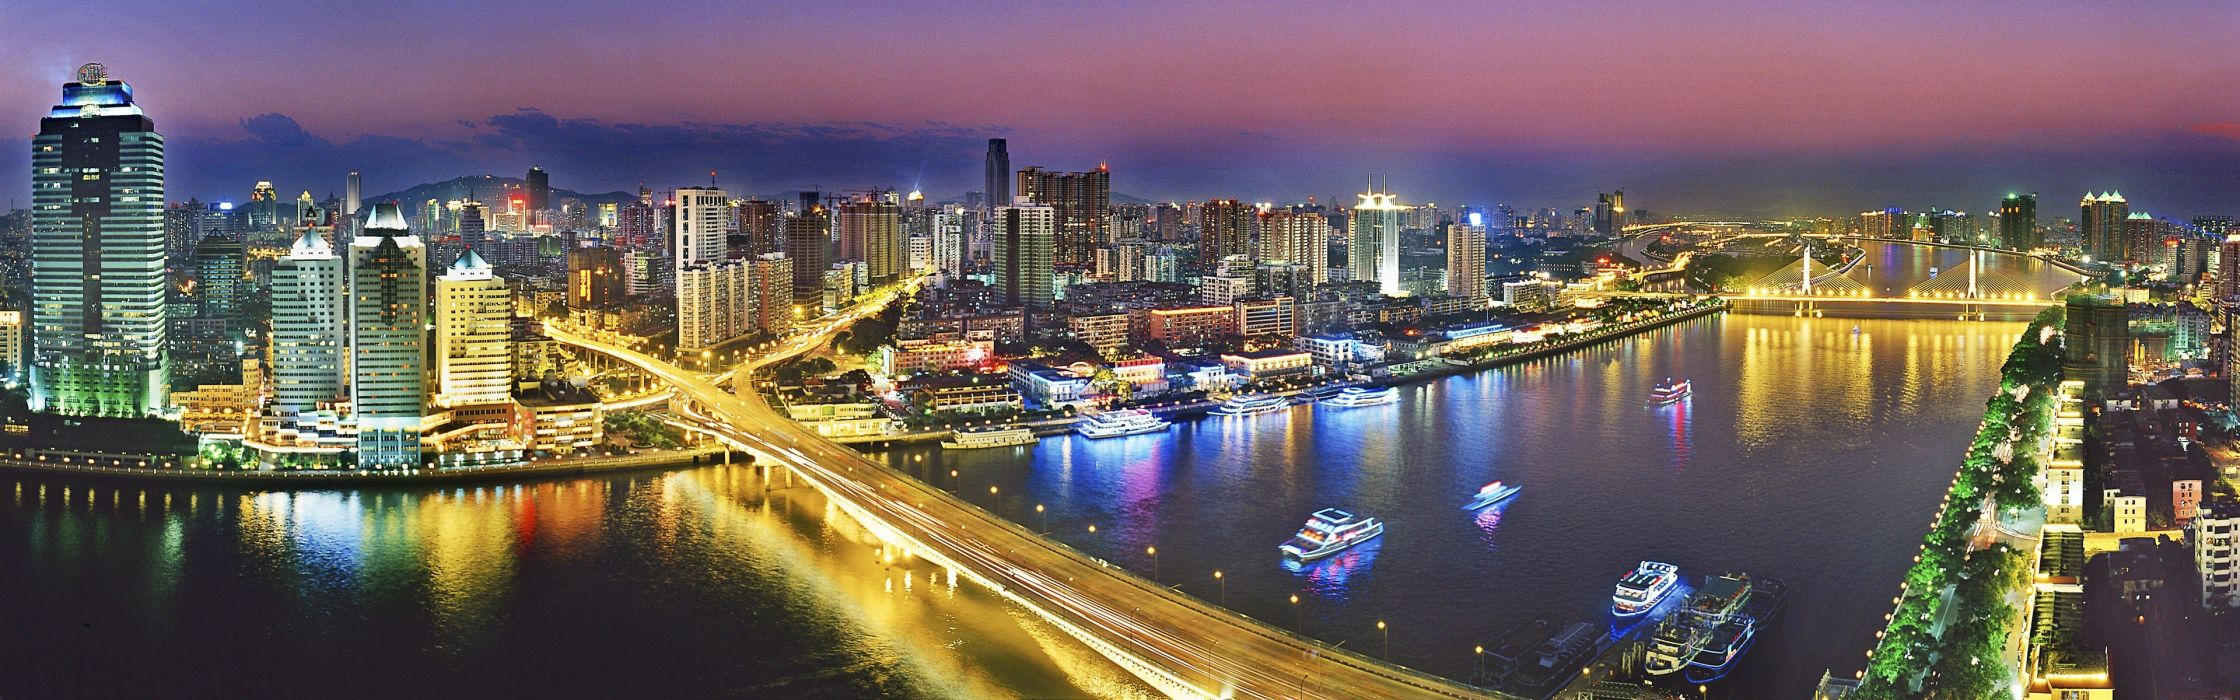 cityscapes China ships bridges skyscrapers city lights panorama rivers reflections wallpaper